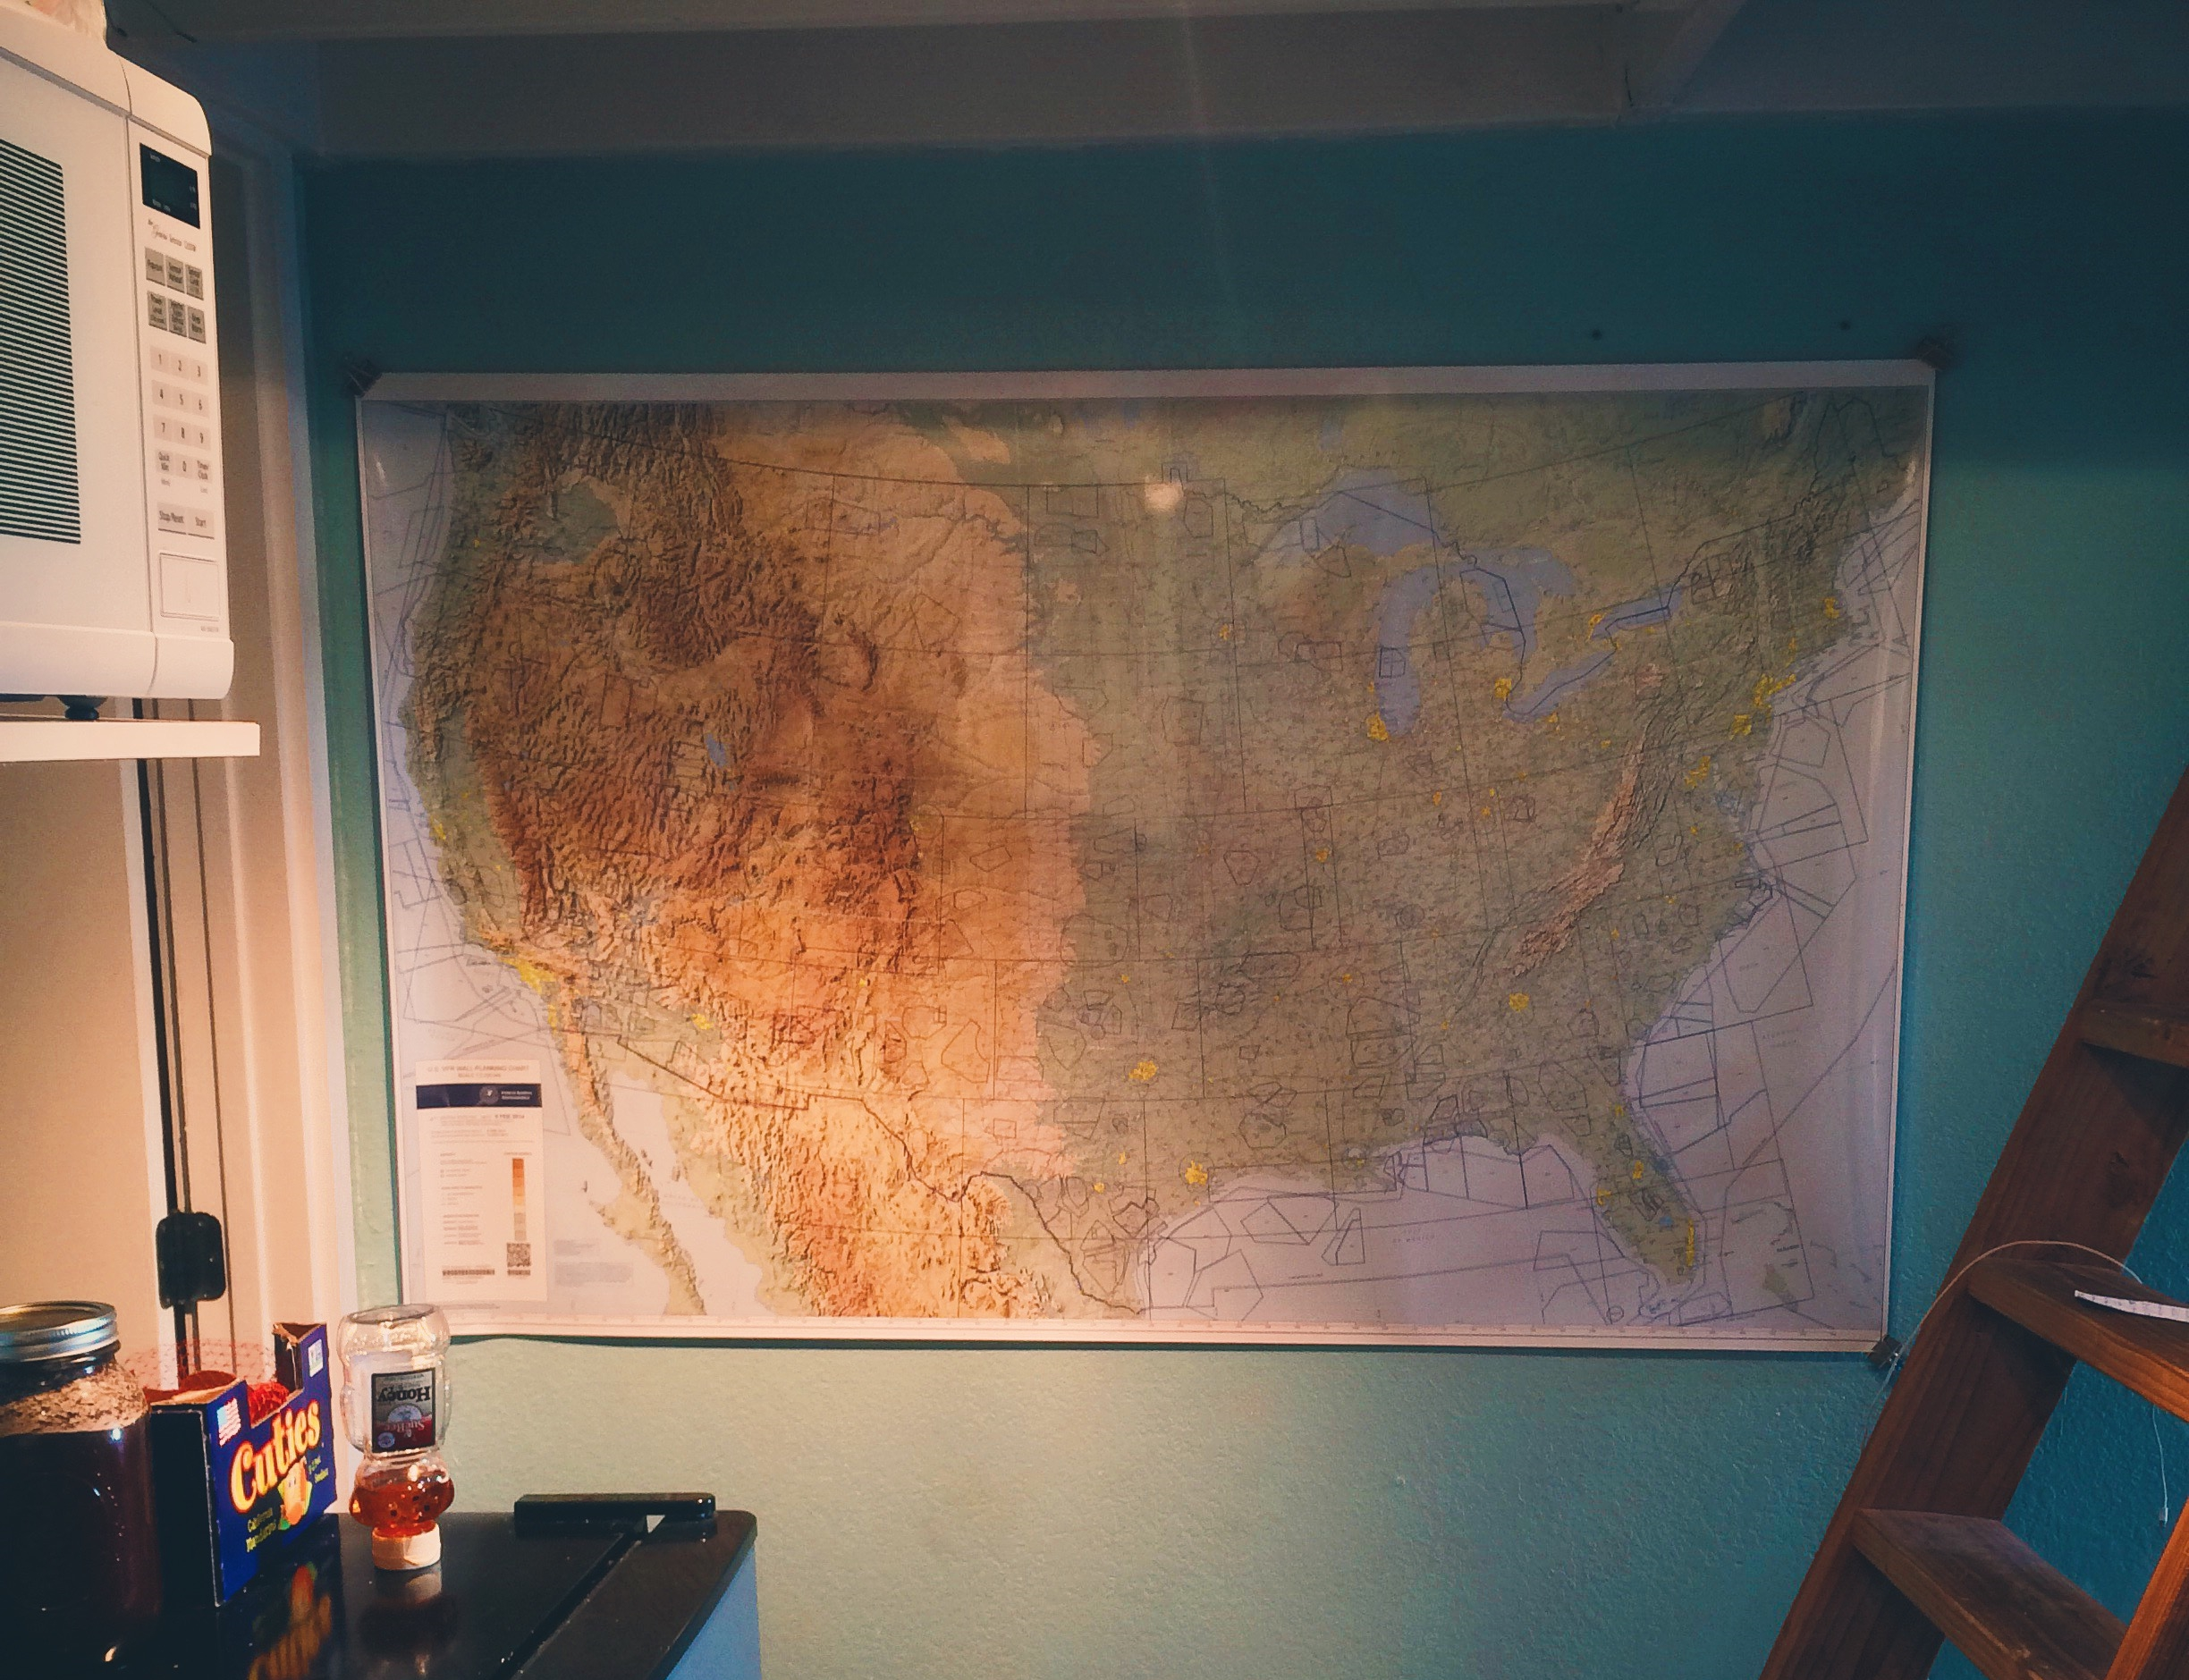 A flight planning chart hangs on my wall now. You can't see it in this shot, but there's a tiny little black dot in California. Walking by it some days,my eyes slowly scan east.